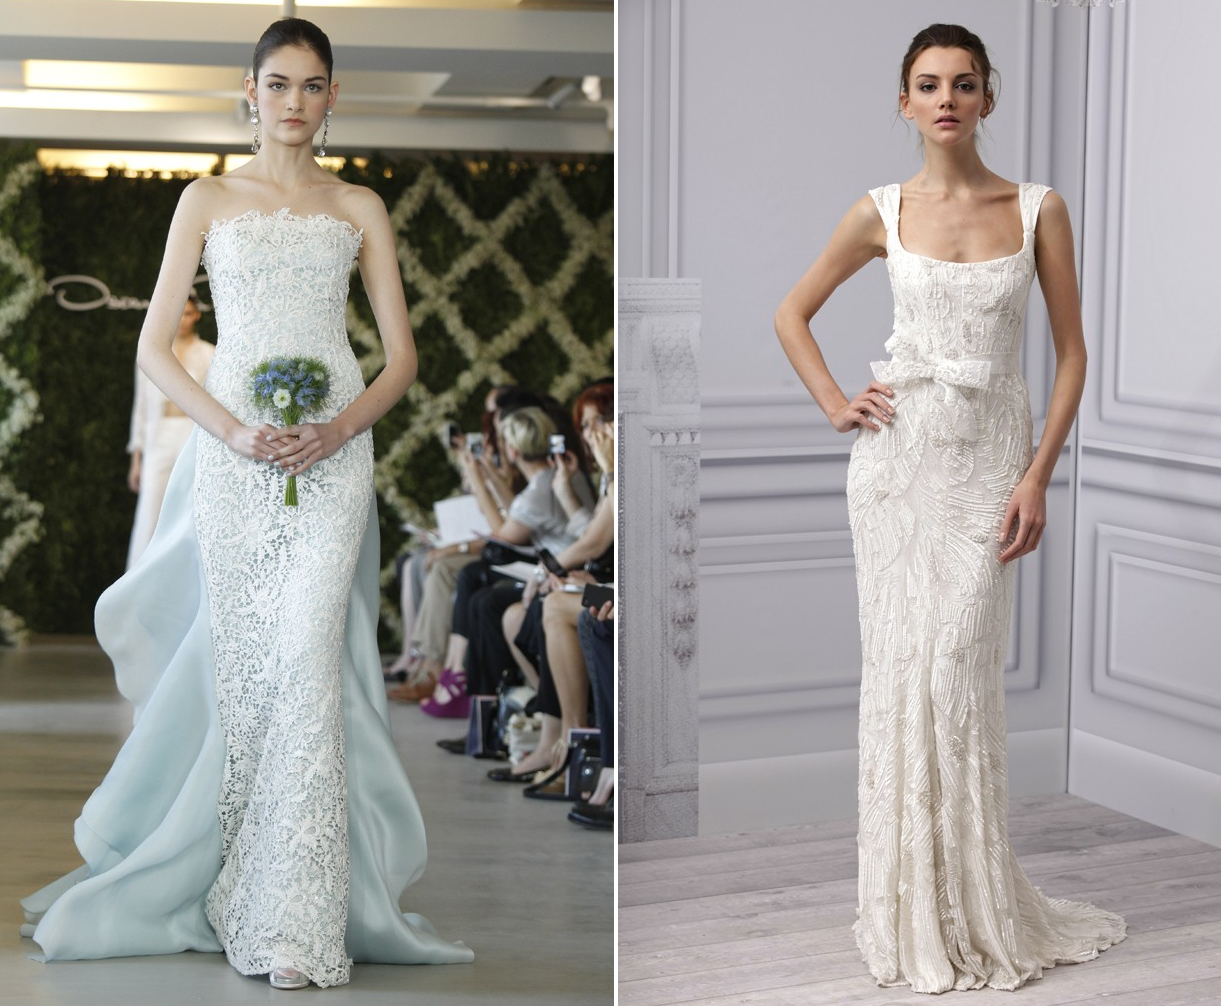 Sheath wedding dresses 2013 bridal monique lhuillier oscar for Where to buy oscar de la renta wedding dress